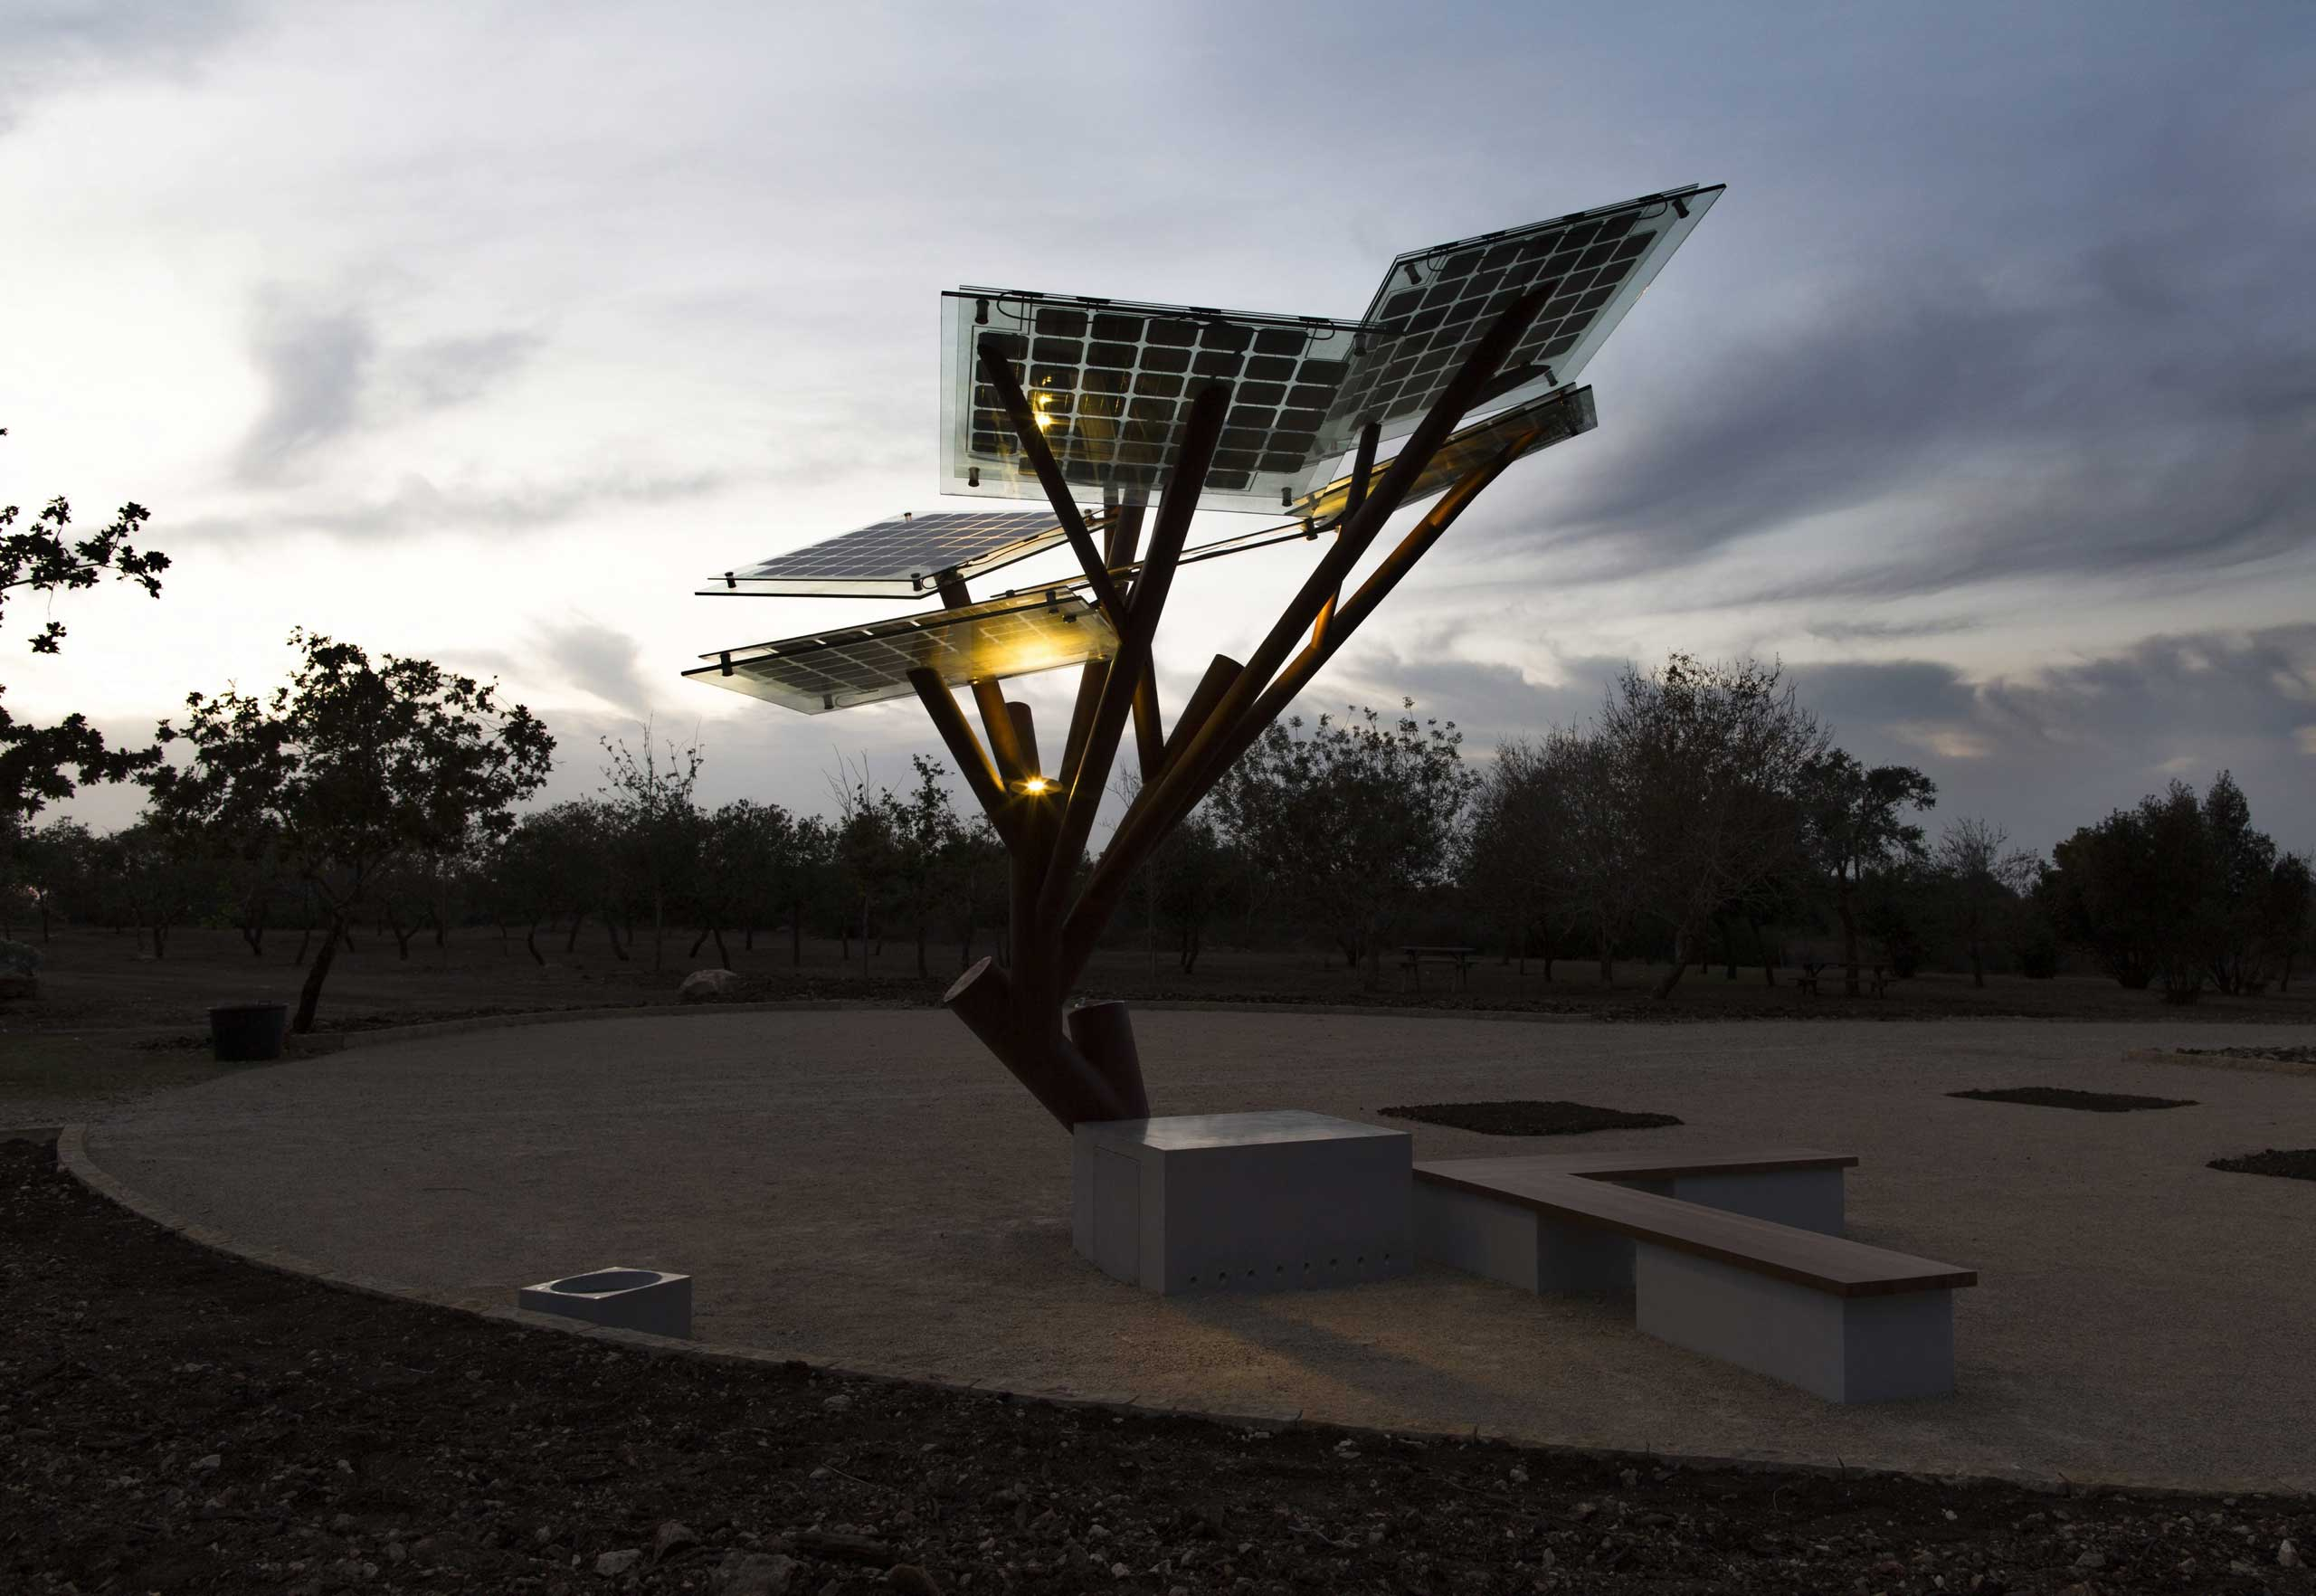 Oct. 22, 2014. The lights of the eTree come on as it gets dark at the prototype unit set up in a park in Zichron Yacov, northern Israel. The eTree is billed as an ecological sculpture assembling a real tree whose canopy is made up of solar panels producing energy from the sun. In addition to offering shade it provides a drinking fountain, free WiFi, a docking station to charge smartphones and tablets, and outlets for electrical appliances. It also has a water dish for dogs and lights that come on when it becomes dark. The next unit will be placed in Nice, France.